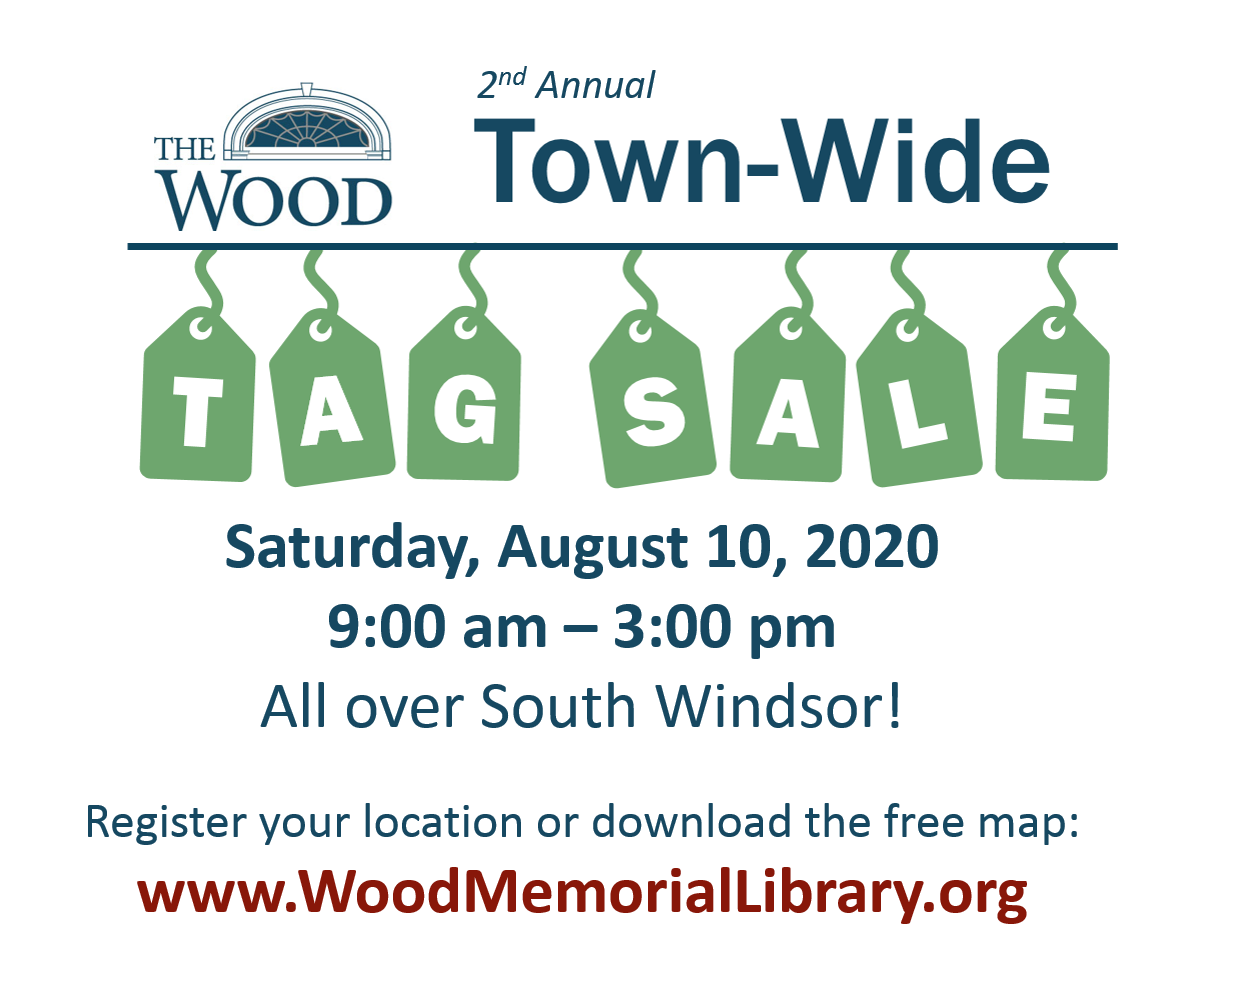 Town-Wide Tag Sale – Friends of Wood Memorial Library & Museum